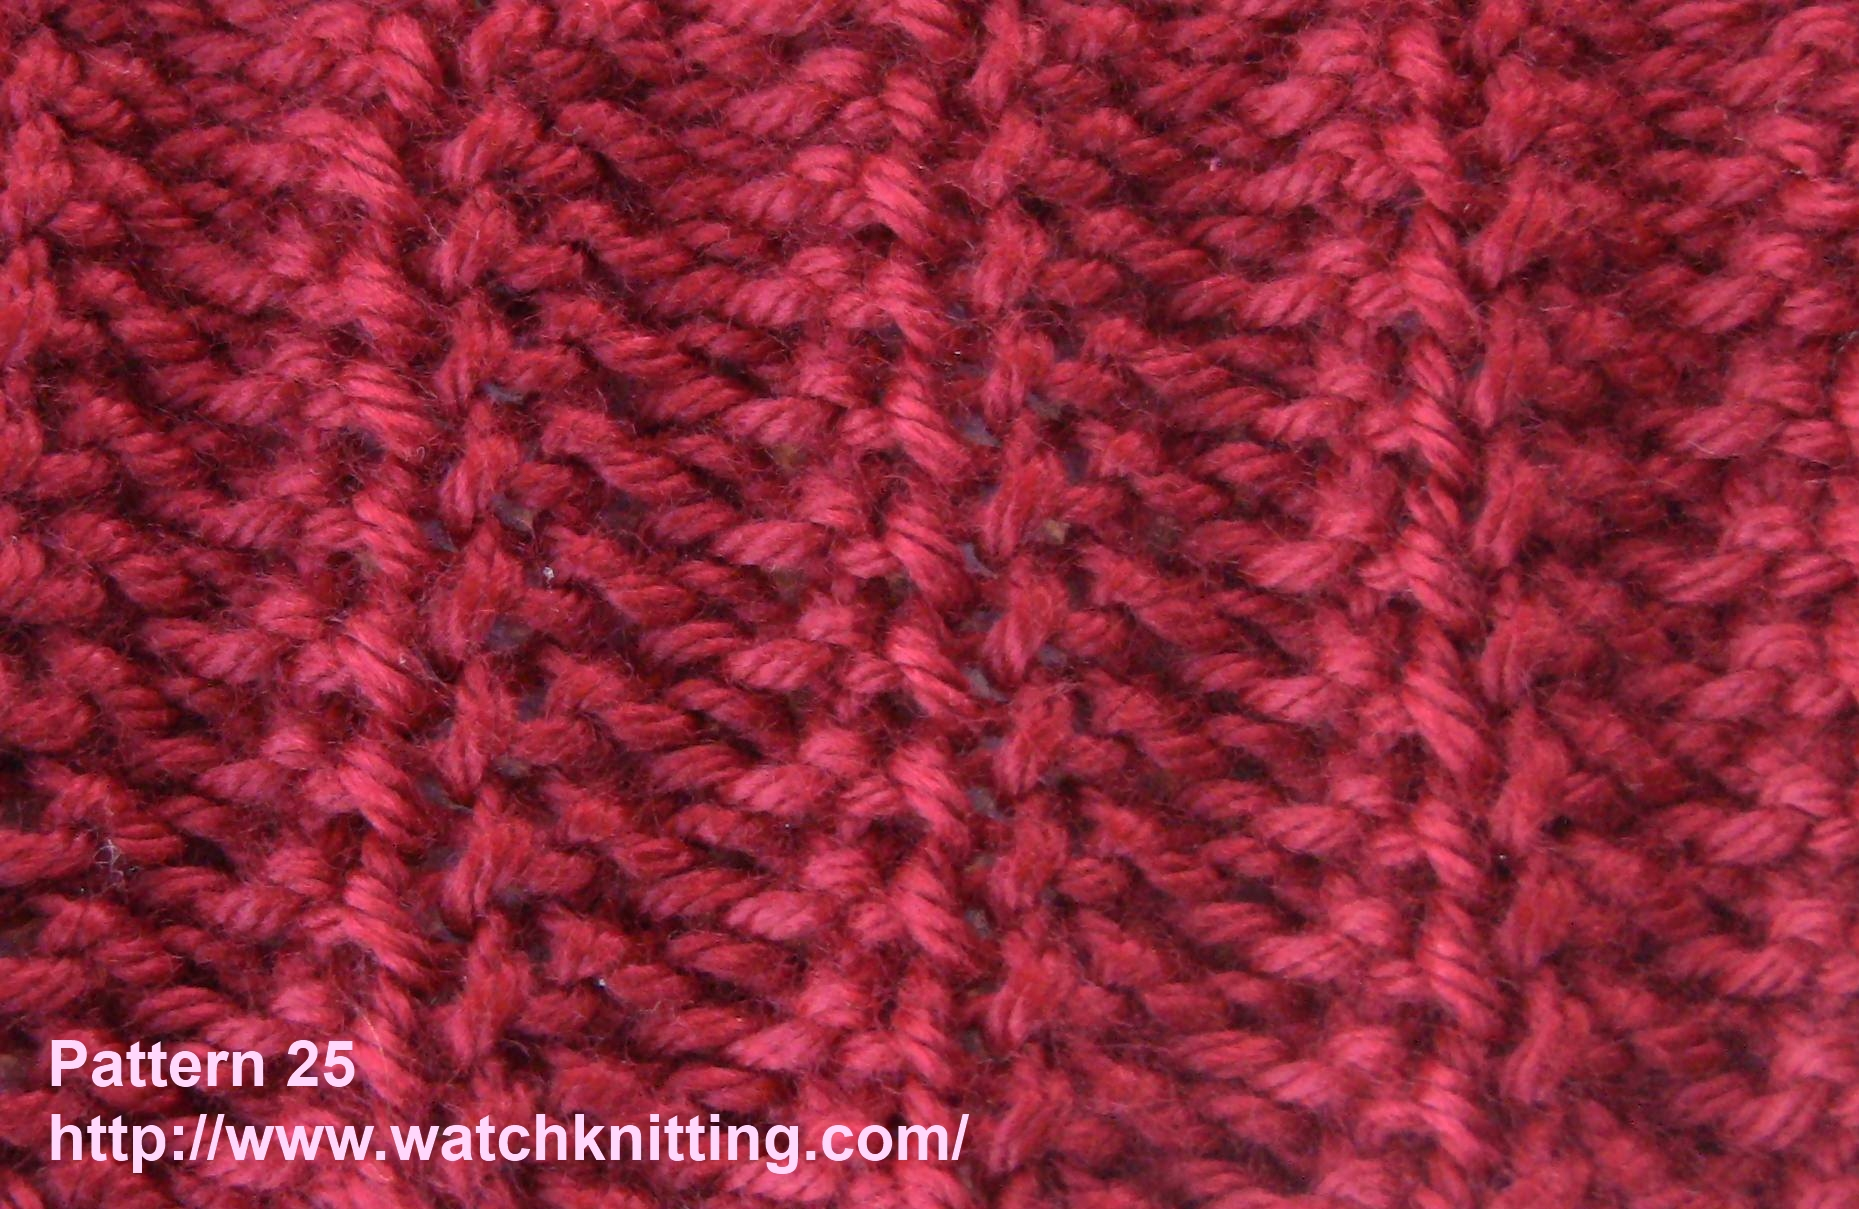 Patterns For Knitting : Knitting Basics For Beginners Watch knitting